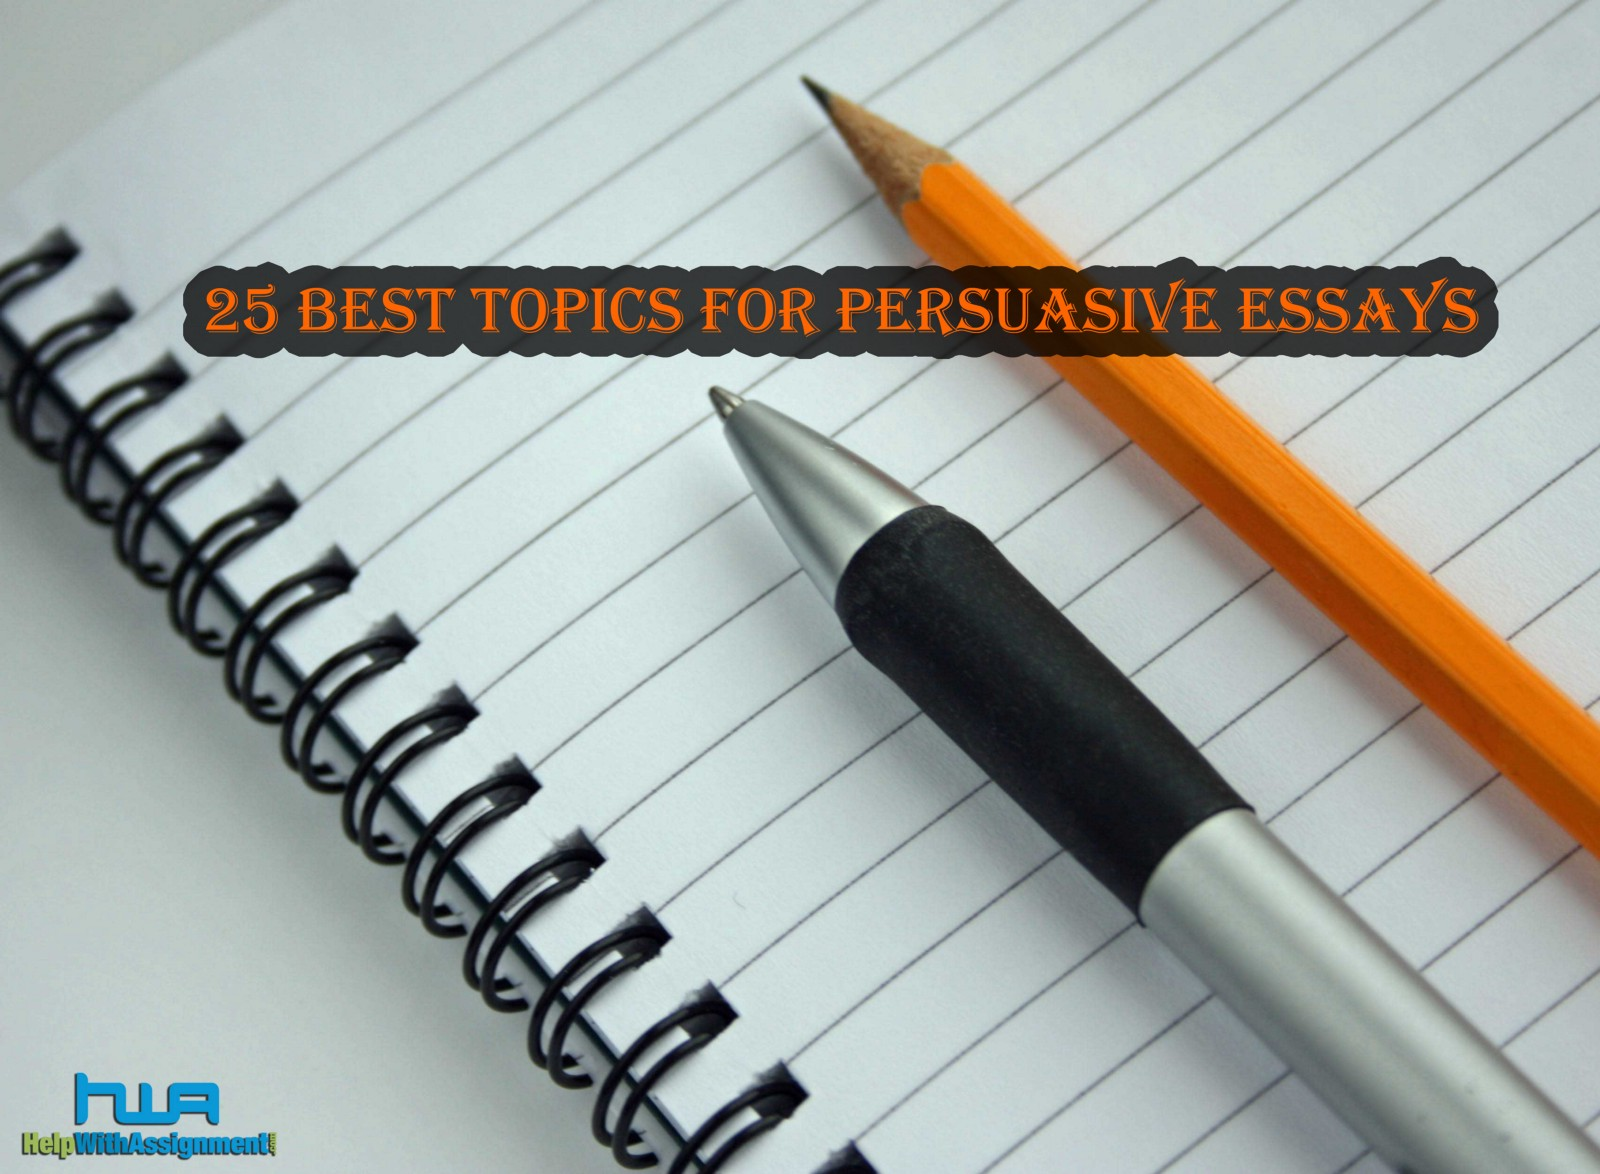 top persuasive essay topics There is a small but important difference between planning a persuasive speech and writing a persuasive essay first, if you are planning a persuasive speech, you should think about a topic that can create mental pictures in the minds of your audience.